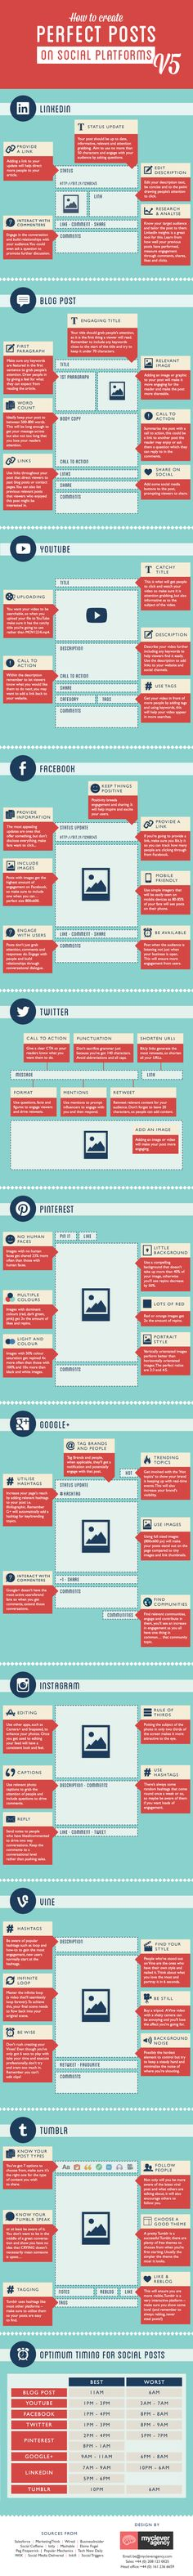 Updated - version 5! Improve your social media posts! This #infographic has great tips for your blog, YouTube, Facebook, Twitter, Pinterest, Google+, LinkedIn, Instagram, Vine, and Tumblr. #SocialMediaTips